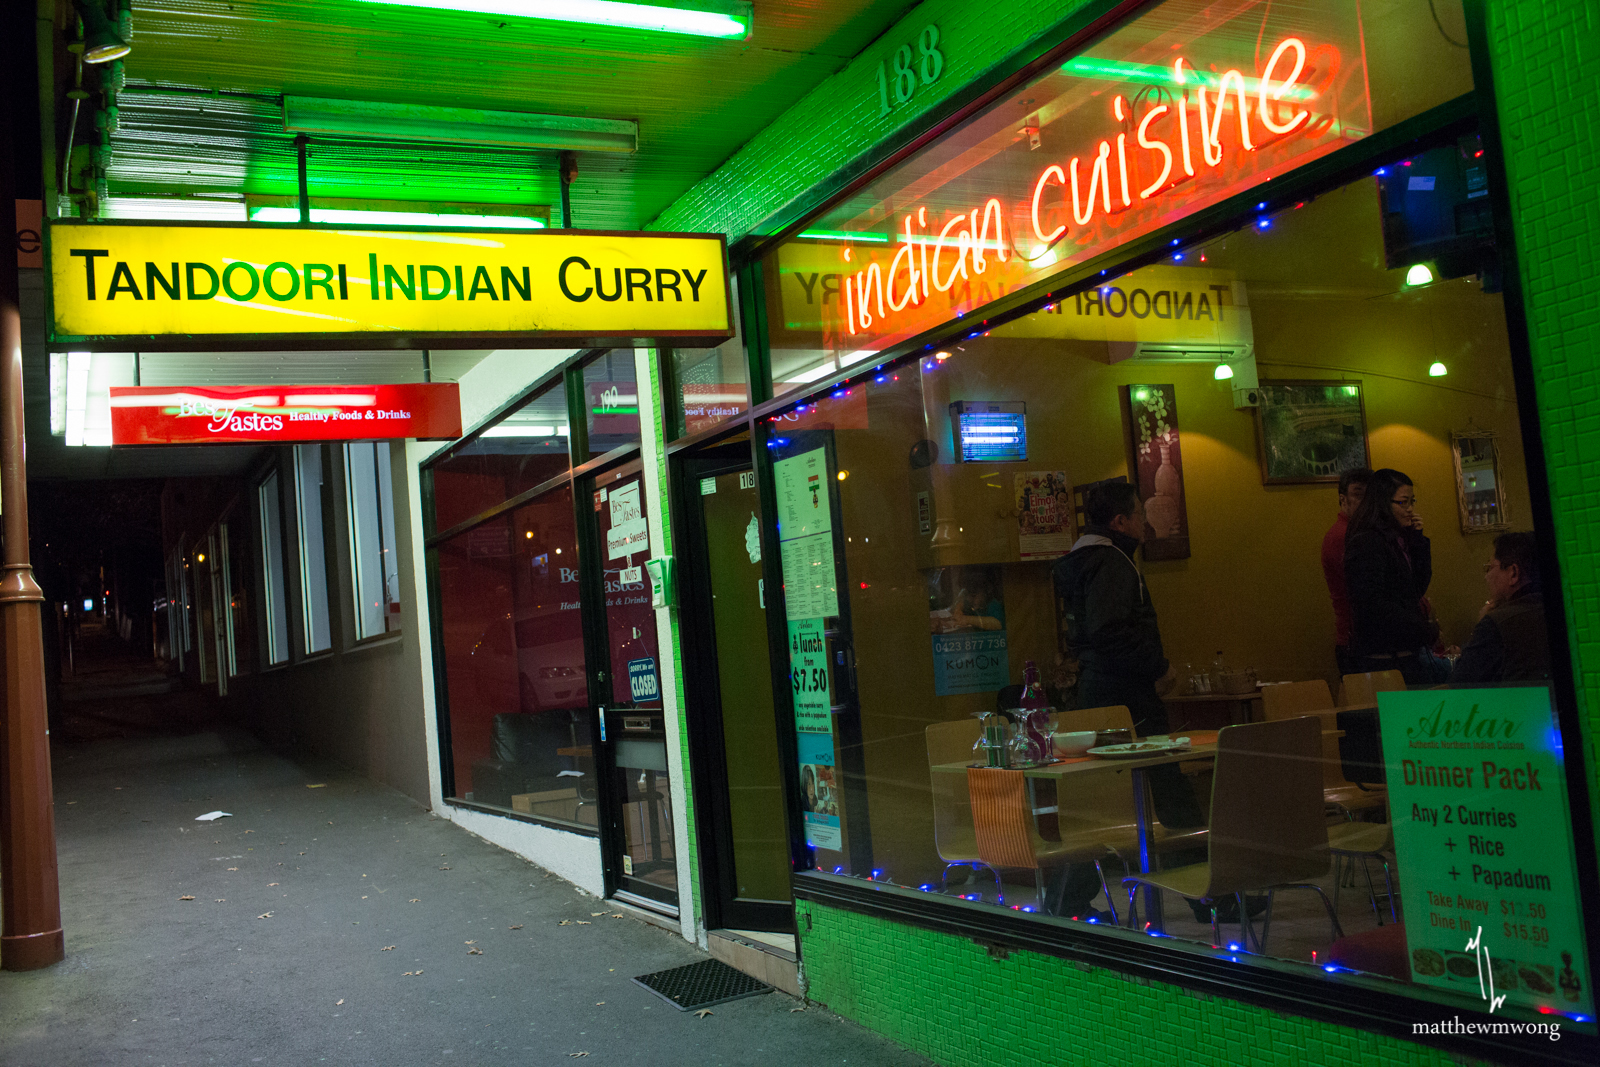 Outside Avtar - Tandoori Indian Curry